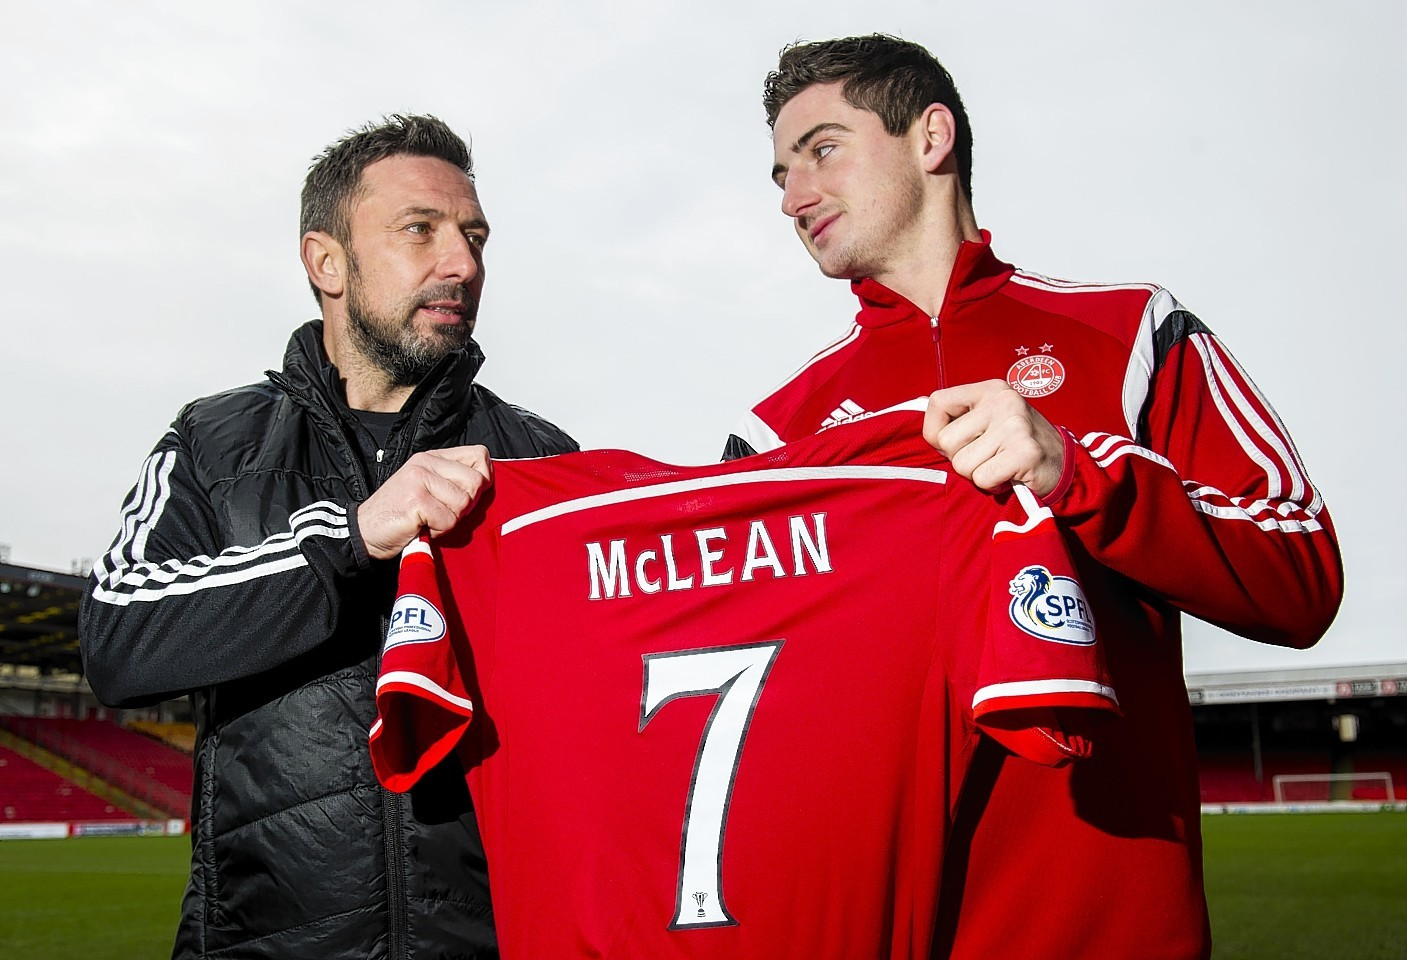 The signing of Kenny McLean has proven to be a good piece of business